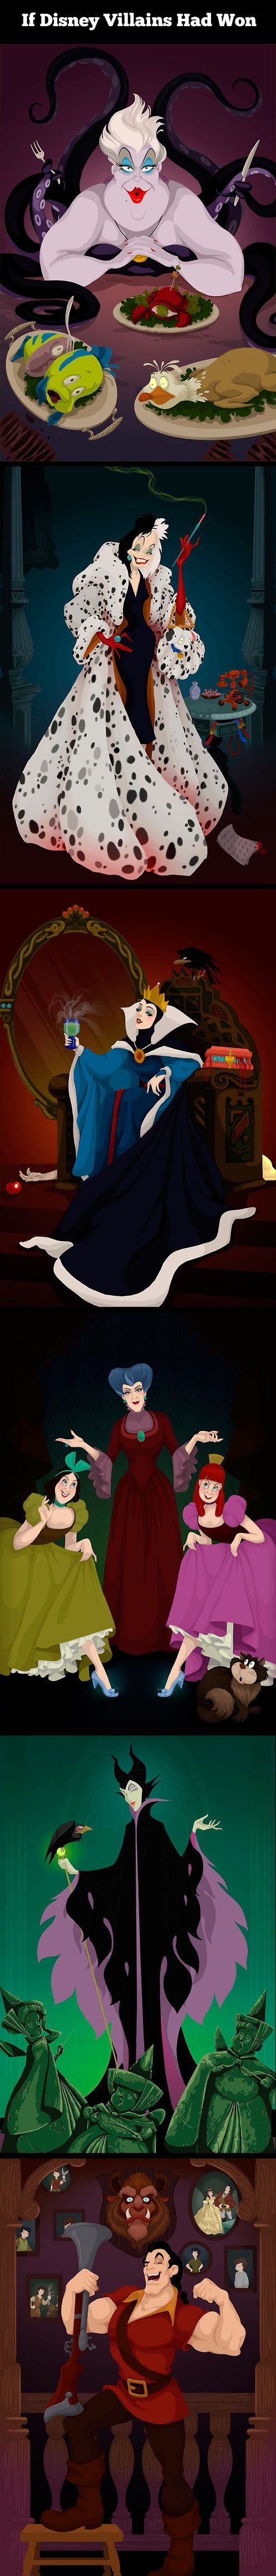 If Disney Villains Had Won...I think Ursula upsets me the most...or Gaston.